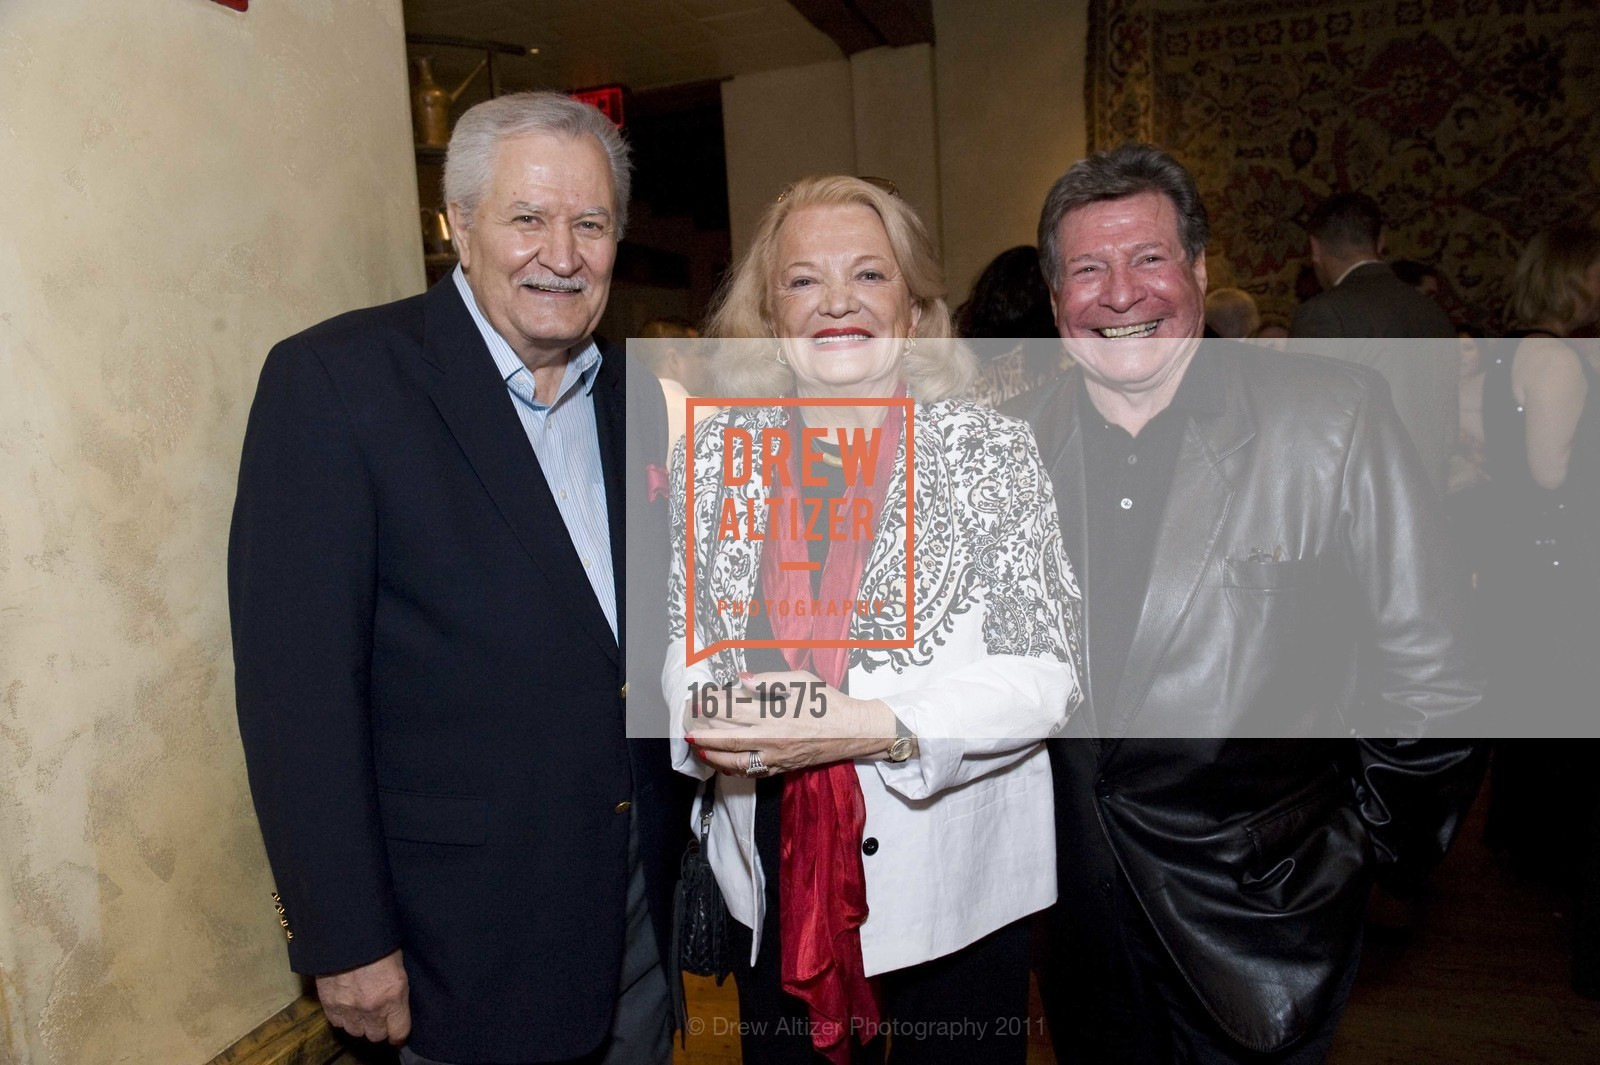 John Aniston, Gena Rowlands, Robert Forrest, Photo #161-1675